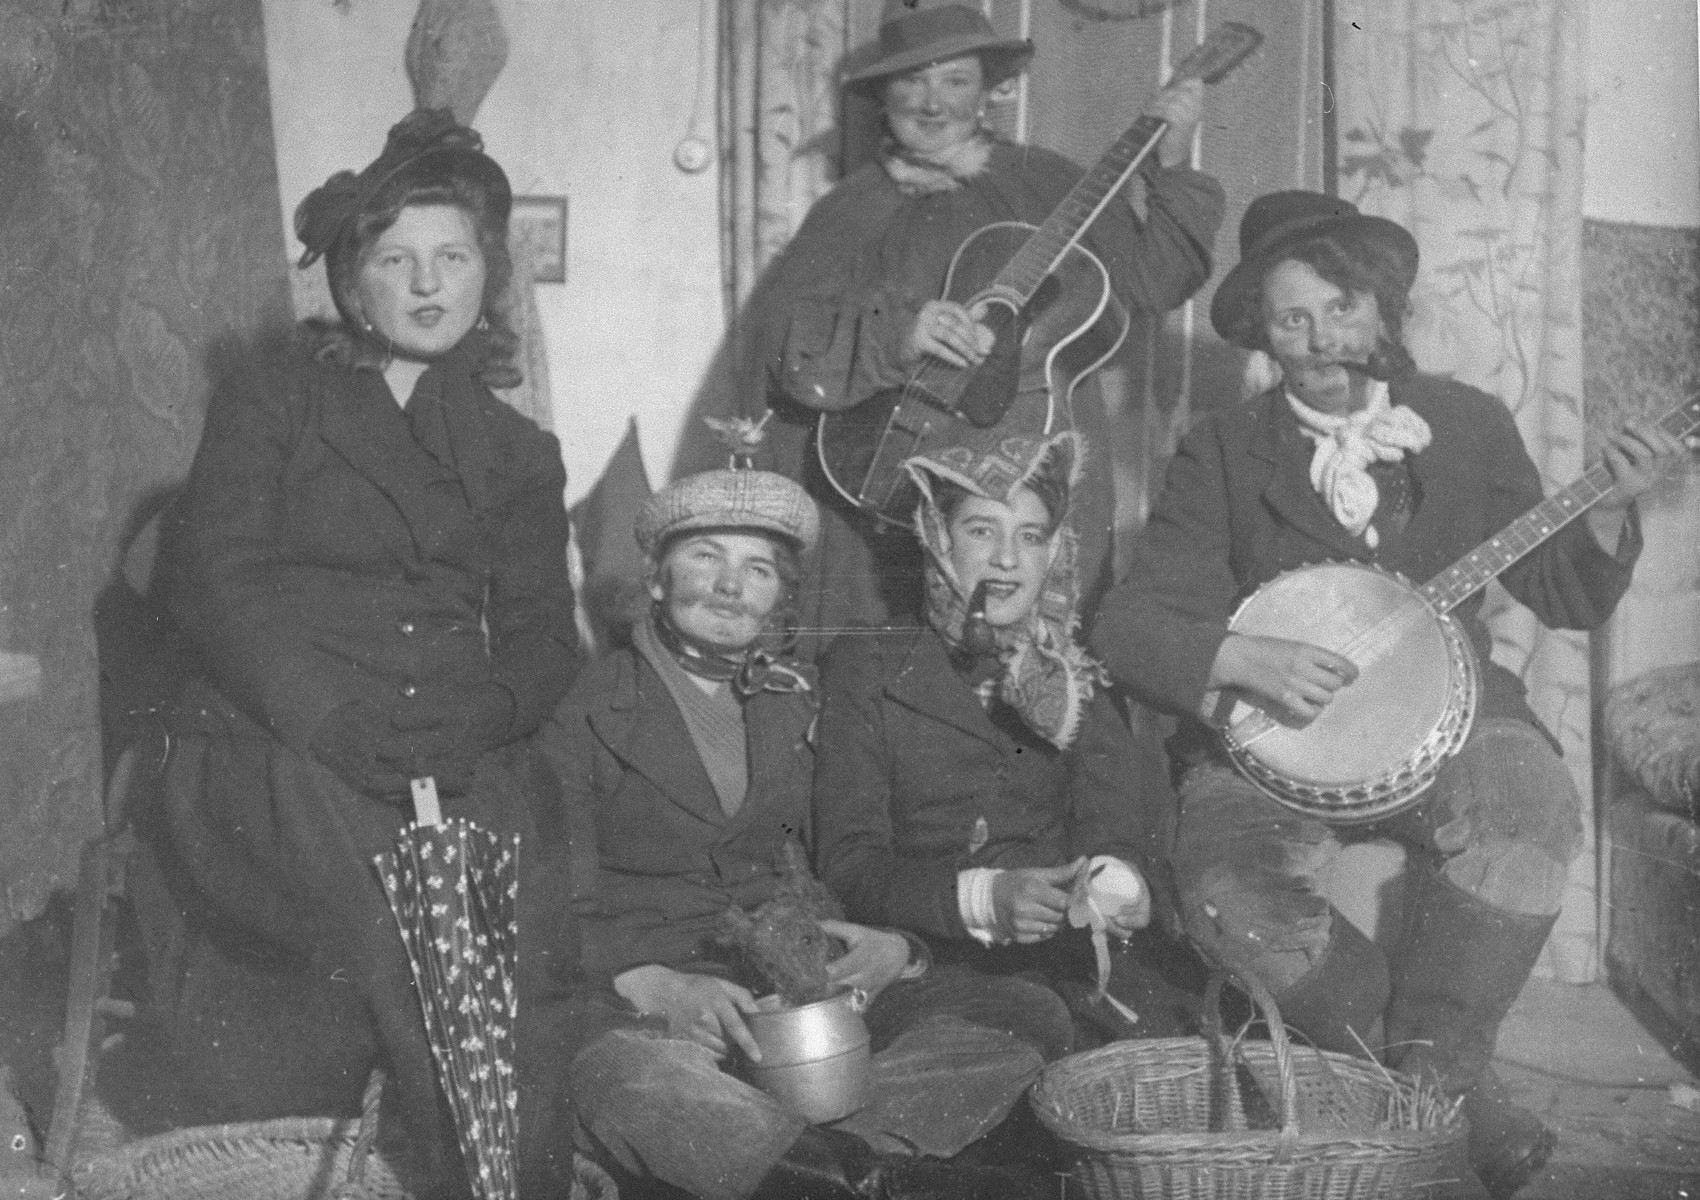 A Jewish teenager living in hiding in Saint Bonnet d'Orcival, France, takes part in a music/theater performance to raise money on behalf of local farmers who were prisoners of war.  Jacqueline Glicenstein, the Jewish teenager, is pictured standing in back with a guitar.  Jacqueline, together with her friend Bernadette, staged the entire performance.